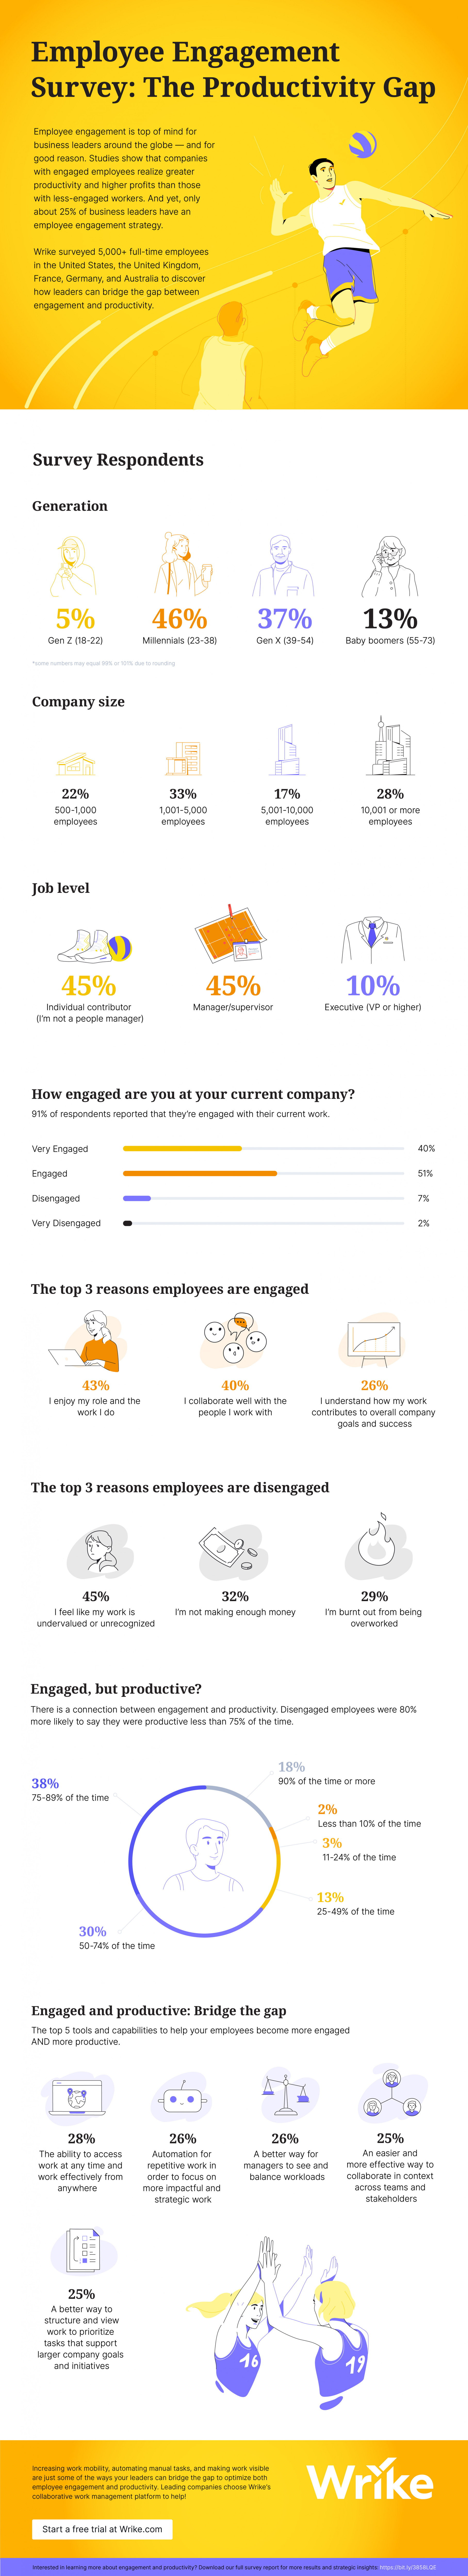 Employee Engagement (Infographic)